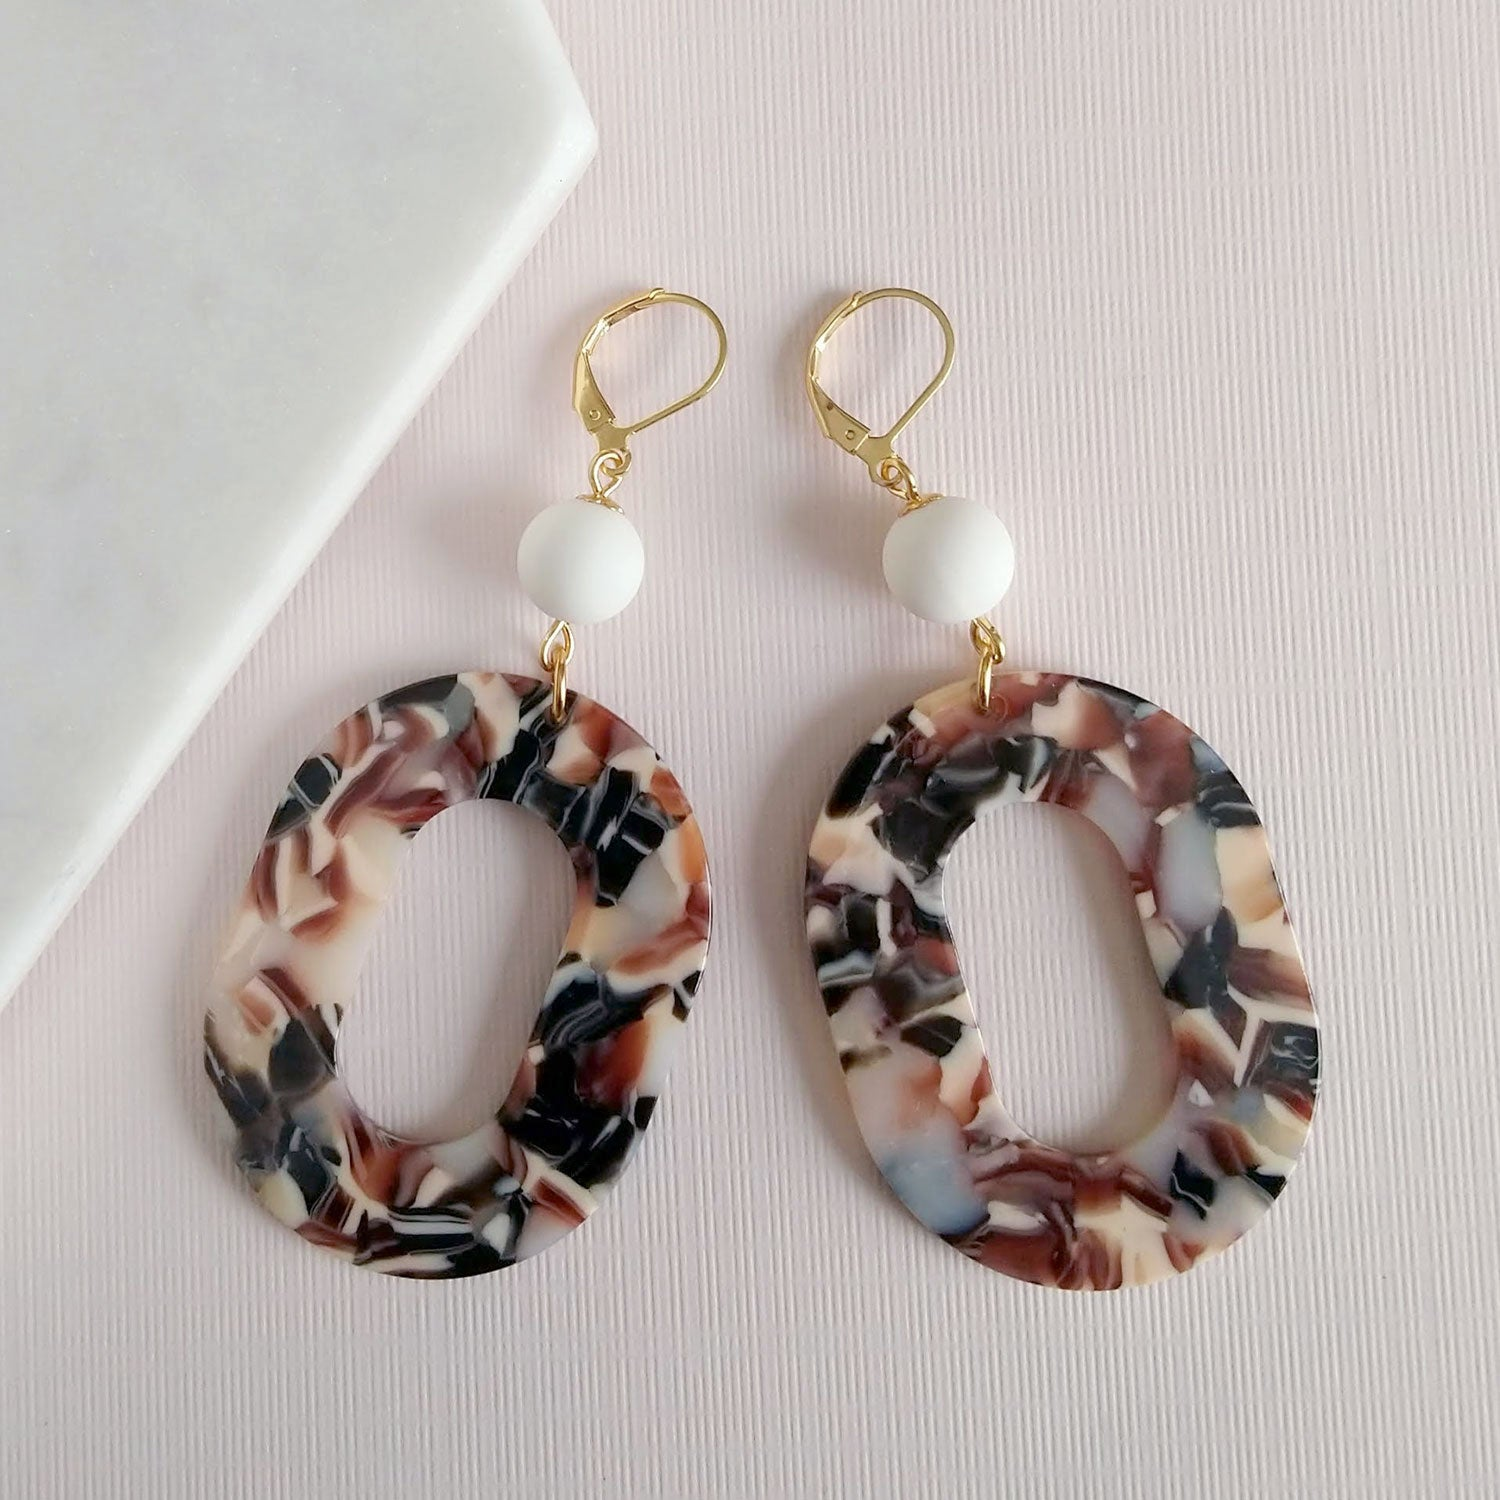 acetate earrings with vintage beads